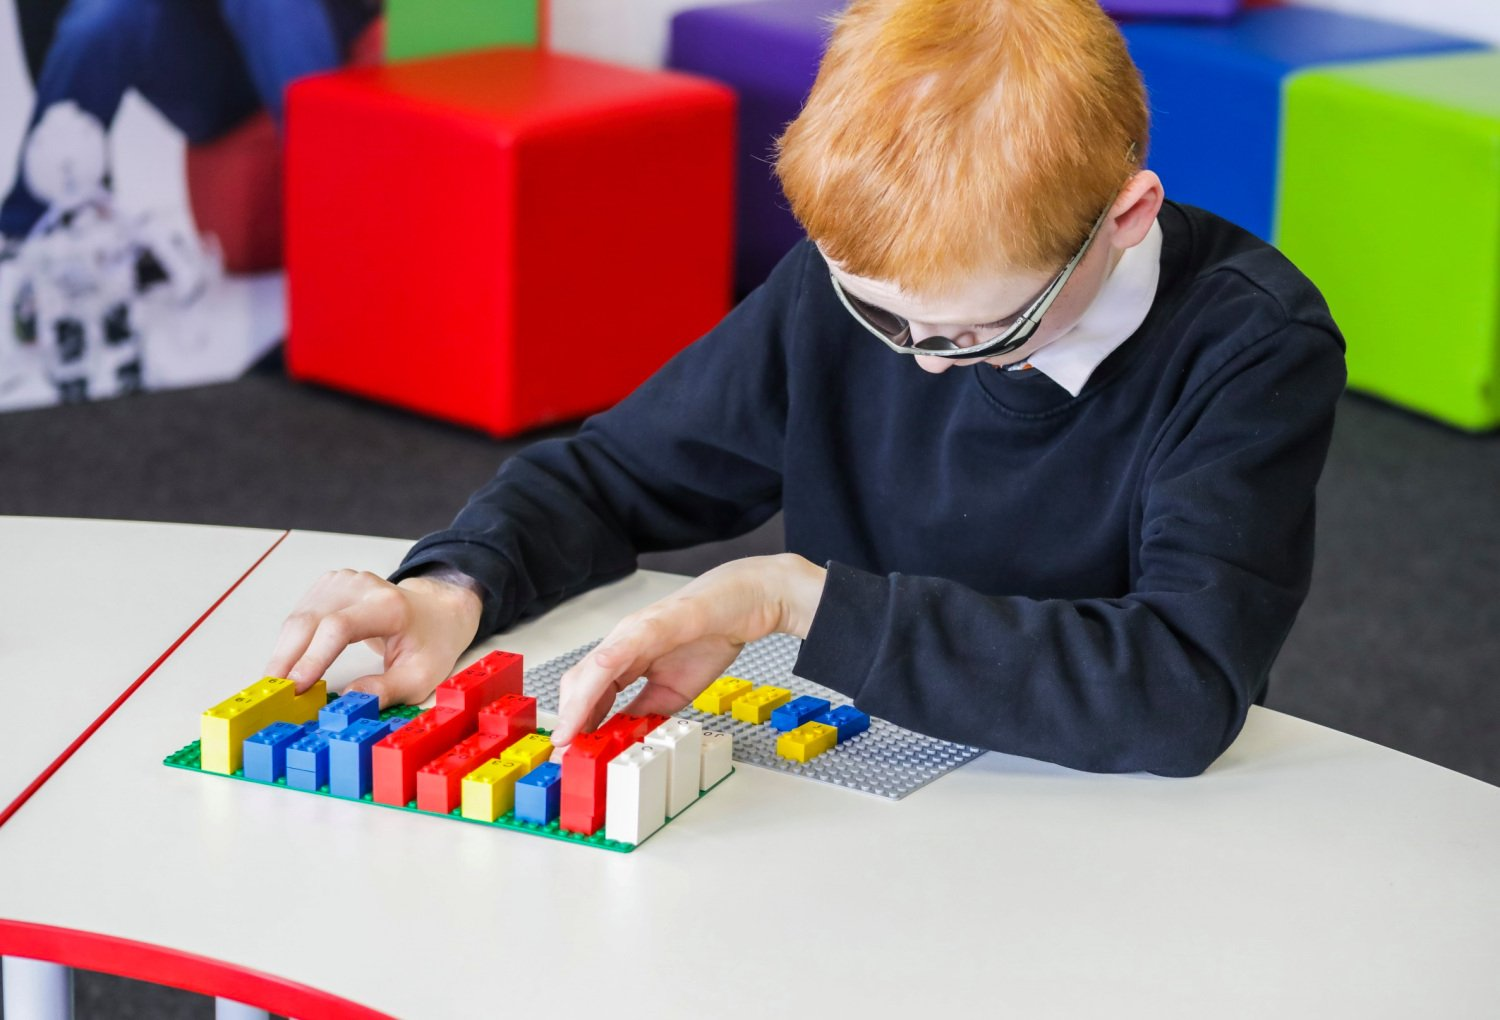 LEGO's New Bricks Make Learning Braille Fun For Visually Impaired Students